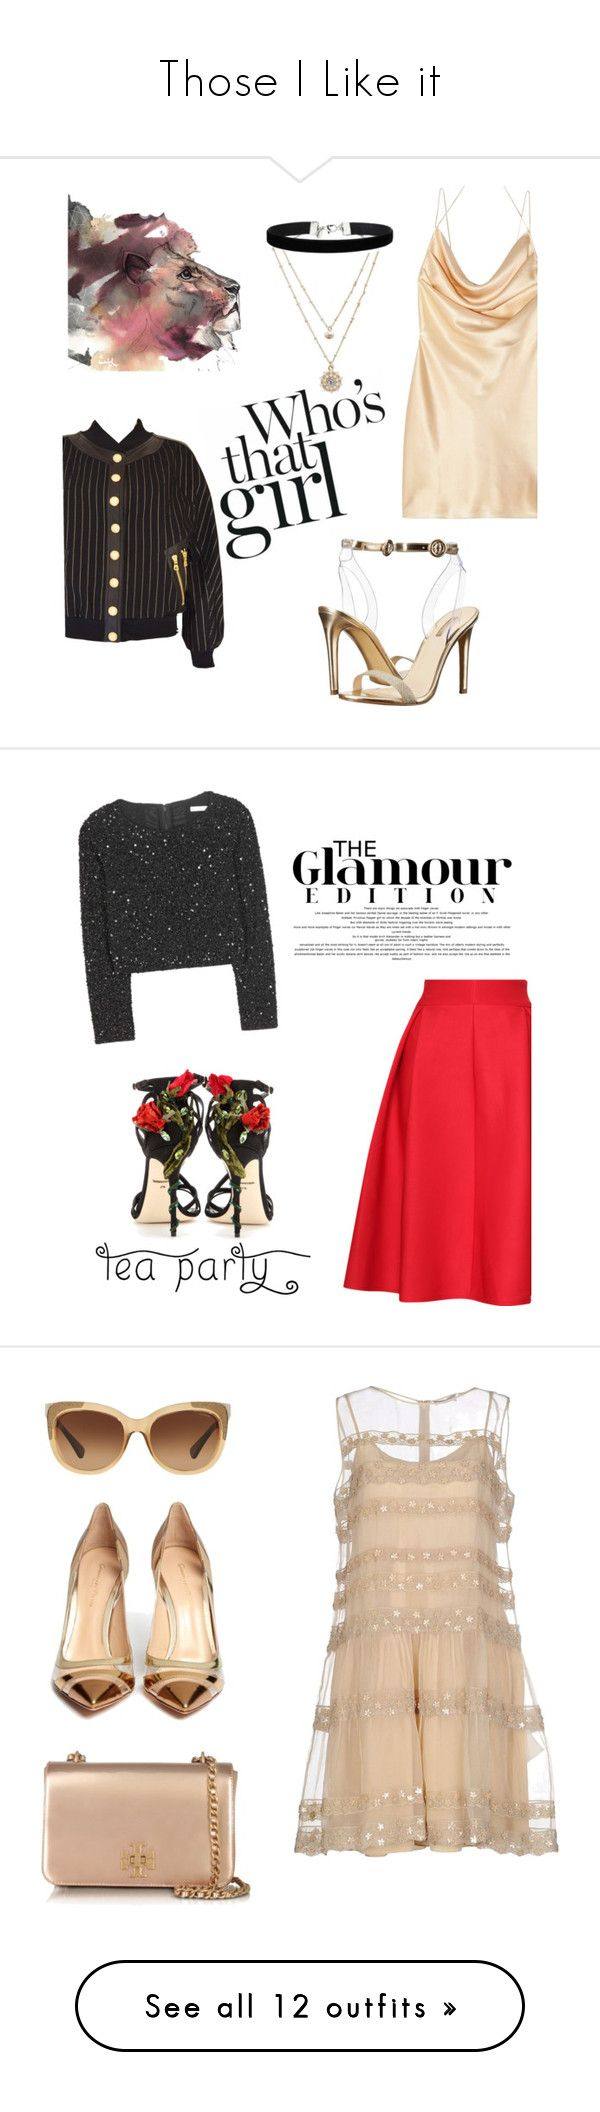 """Those I Like it"" by melaniemeran ❤ liked on Polyvore featuring Imagination Illustrated, Yves Saint Laurent, Balmain, GUESS, LC Lauren Conrad, Miss Selfridge, fashionhoroscope, stylehoroscope, Relaxfeel and Alice + Olivia"